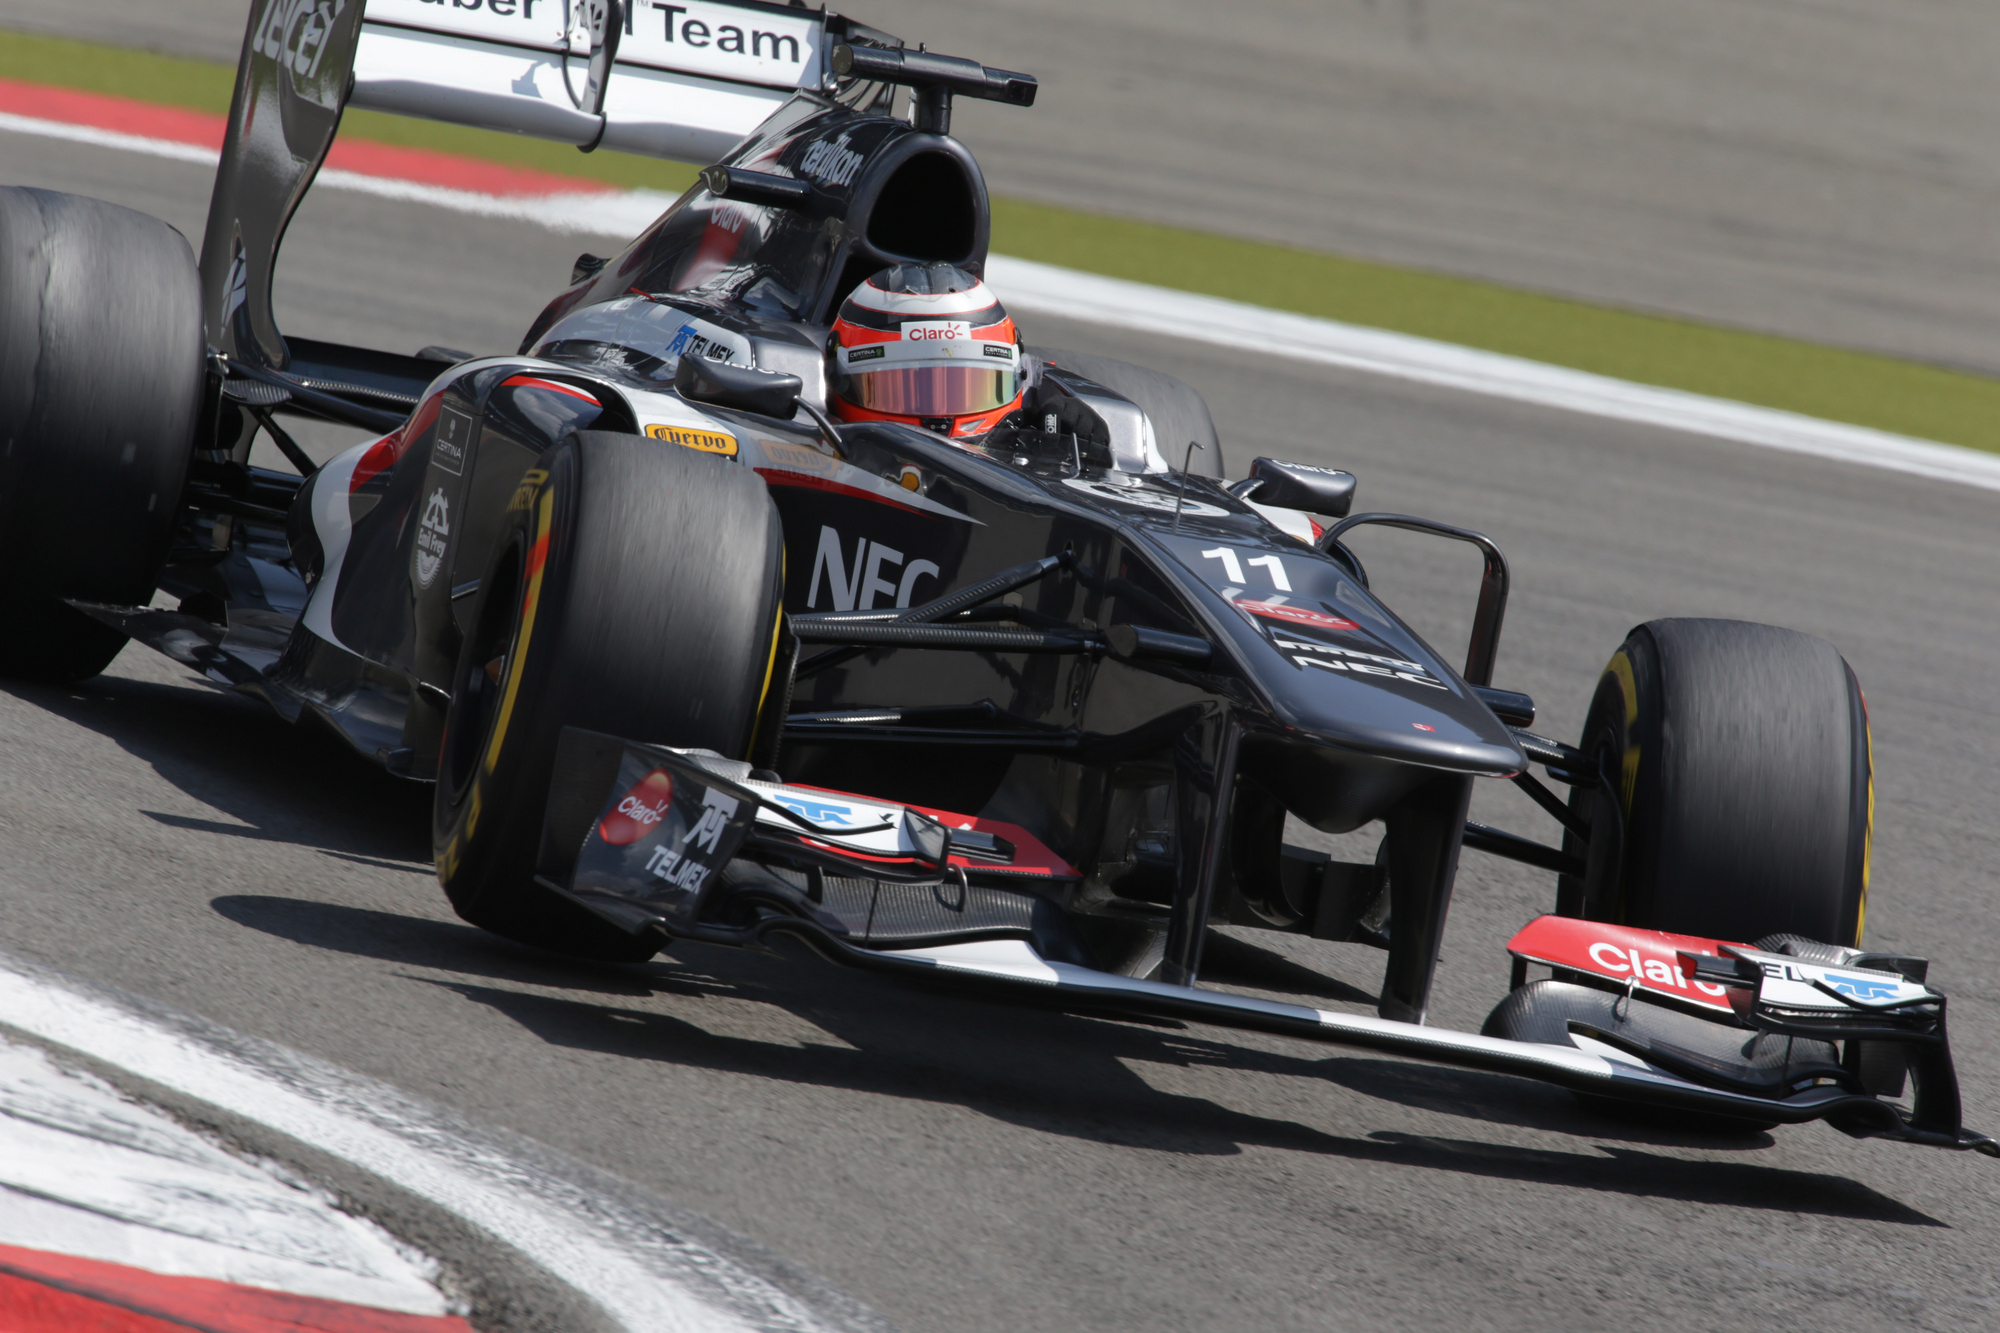 Sauber will have to take on a Russian driver as part of the Russian funding